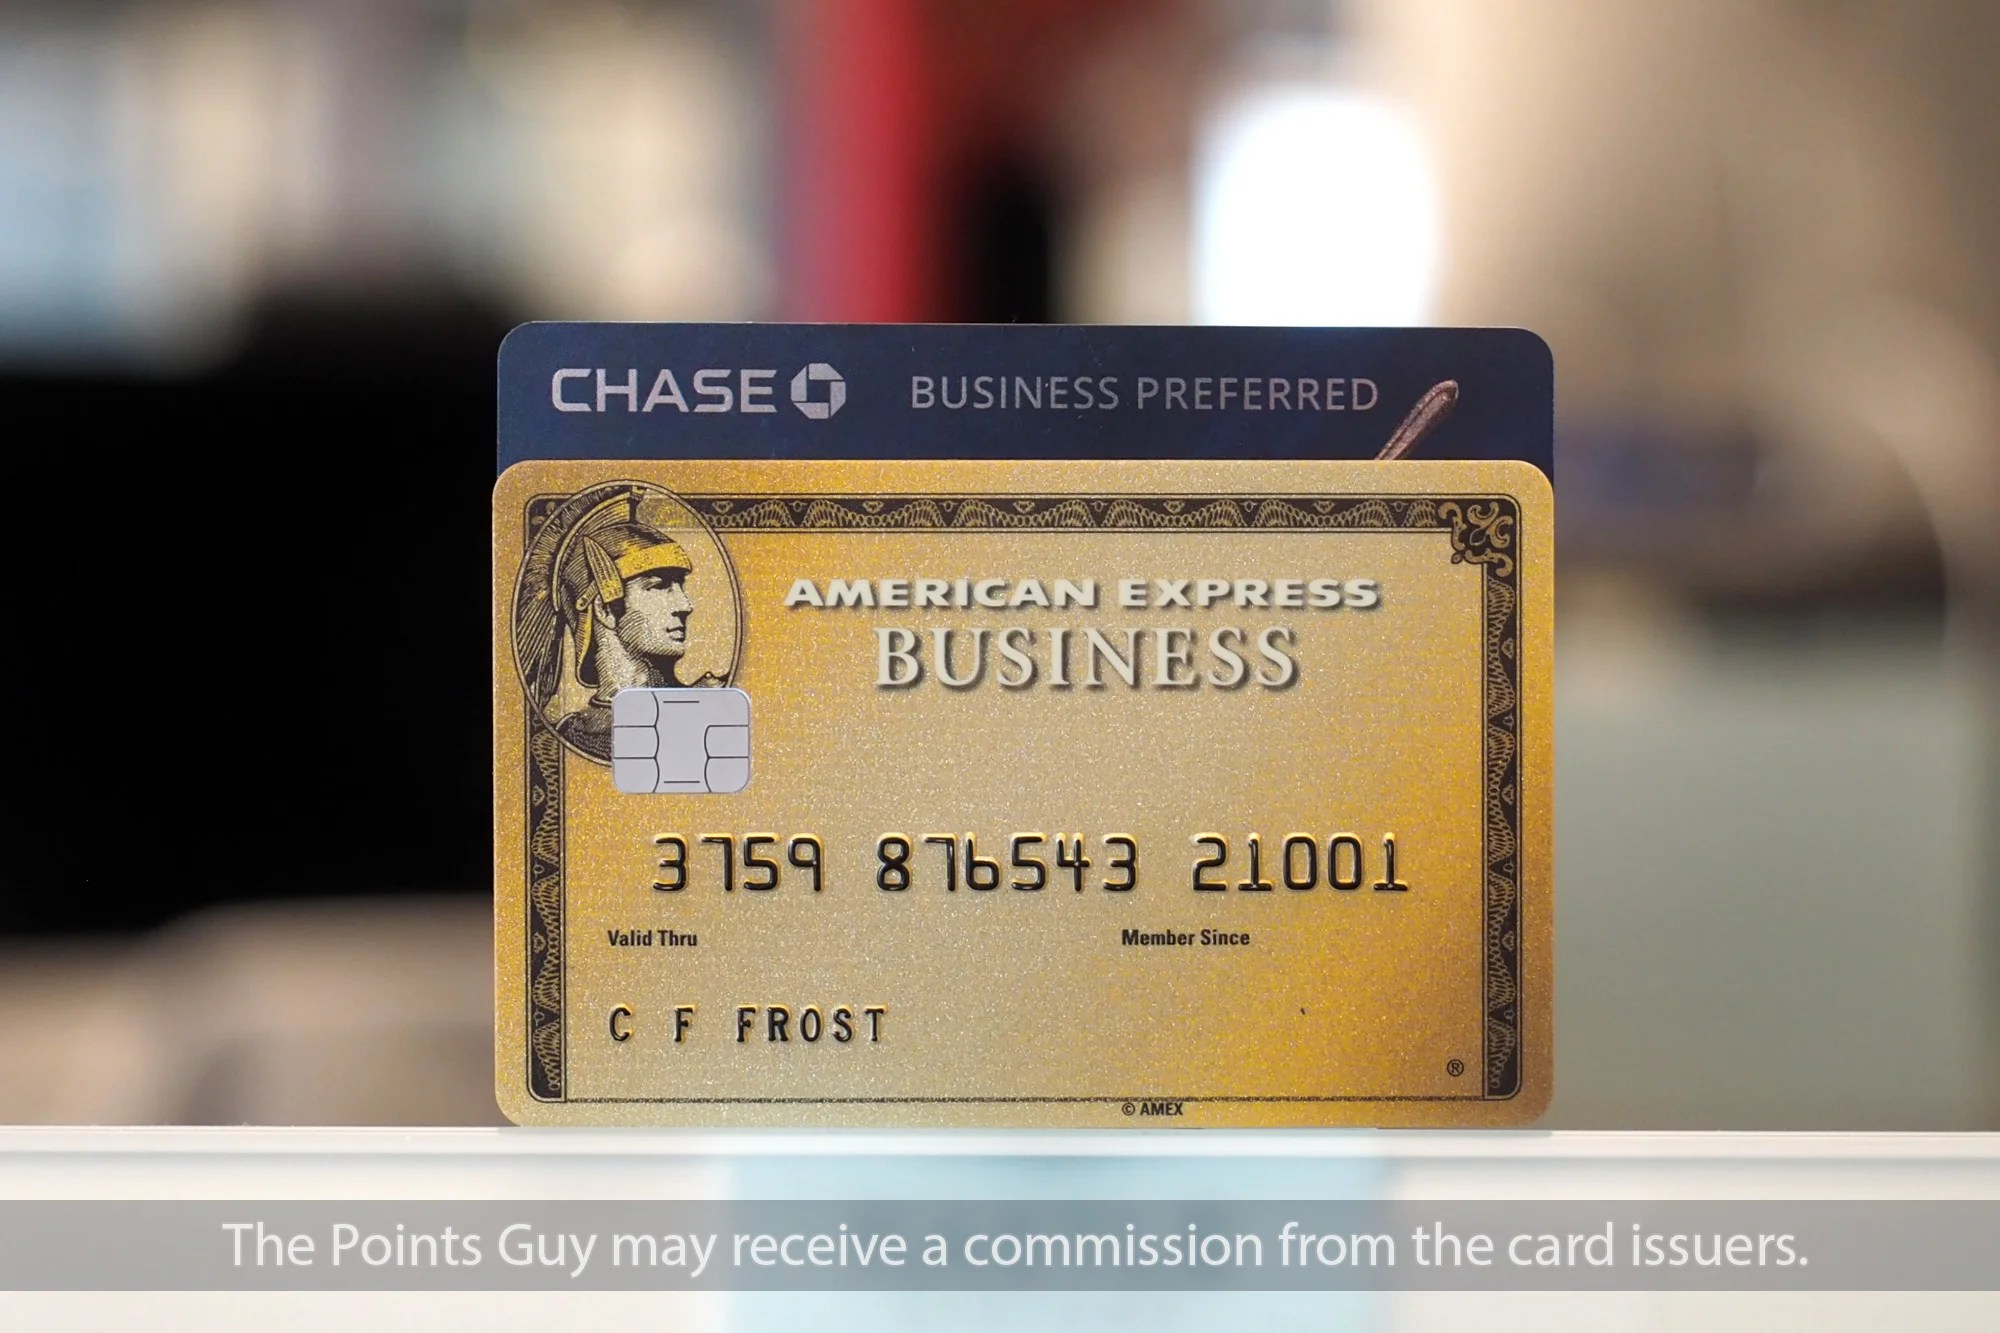 Amex business gold rewards vs chase ink business preferred negle Gallery